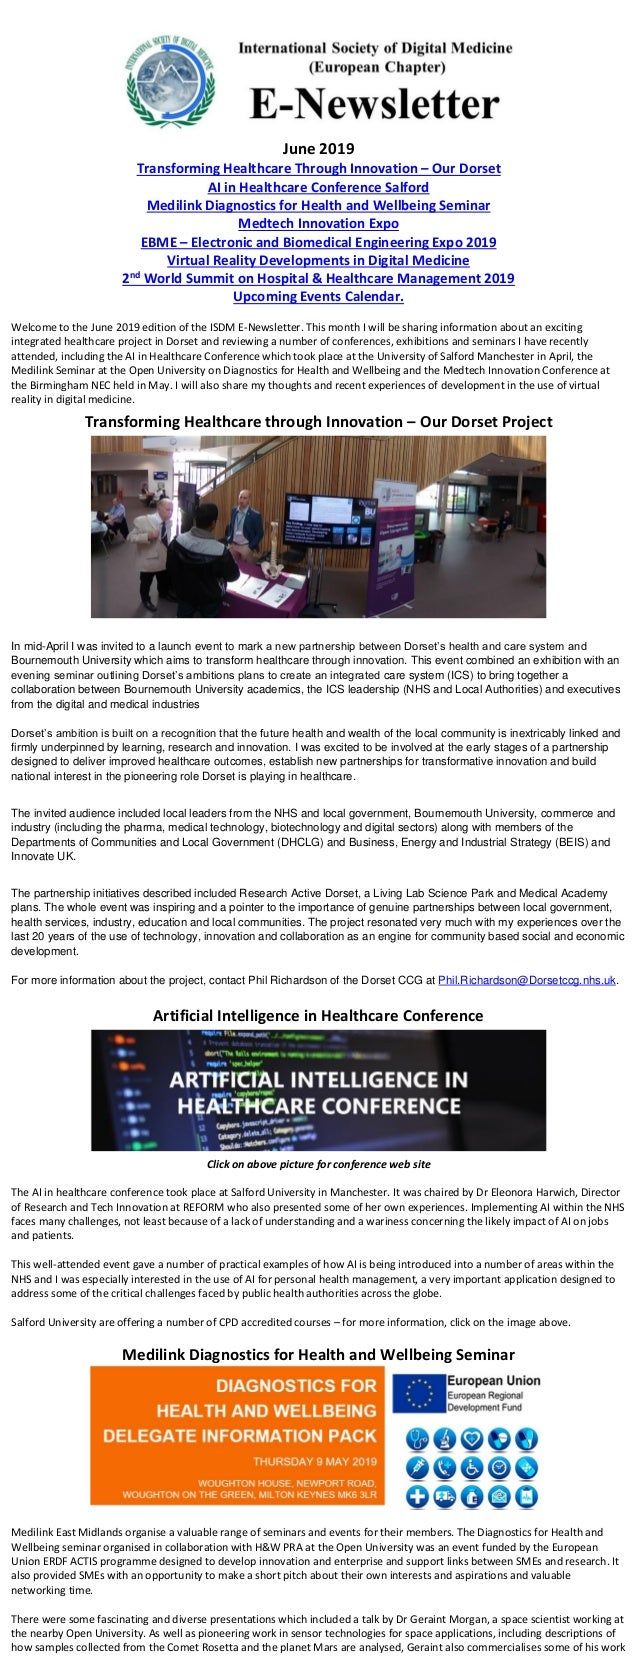 June 2019 Transforming Healthcare Through Innovation – Our Dorset AI in Healthcare Conference Salford Medilink Diagnostics...